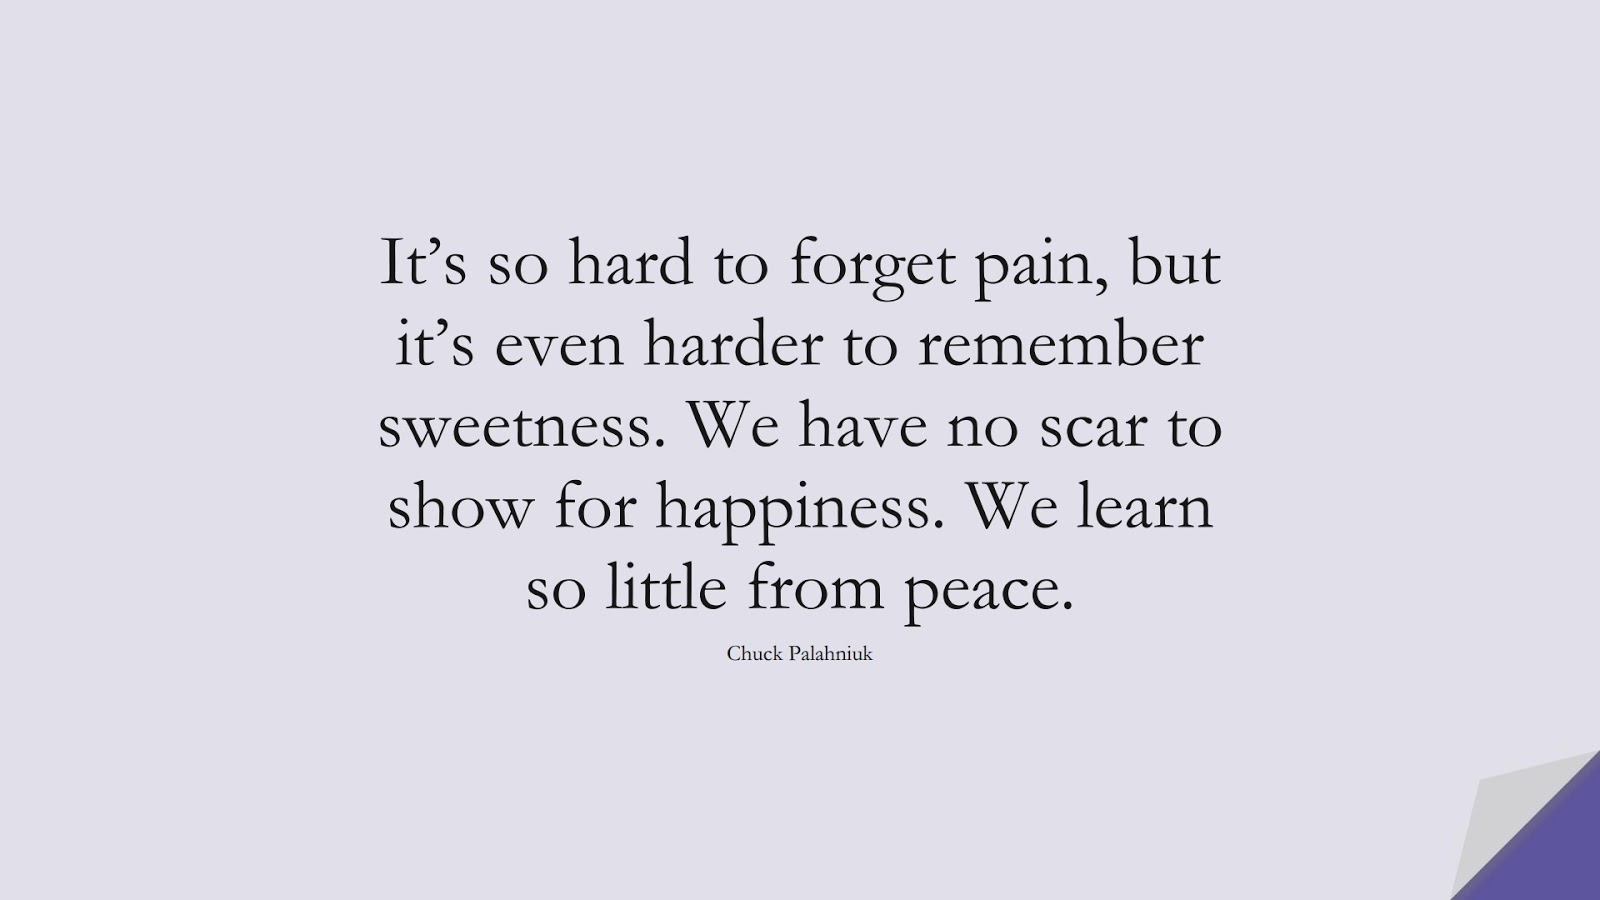 It's so hard to forget pain, but it's even harder to remember sweetness. We have no scar to show for happiness. We learn so little from peace. (Chuck Palahniuk);  #HappinessQuotes